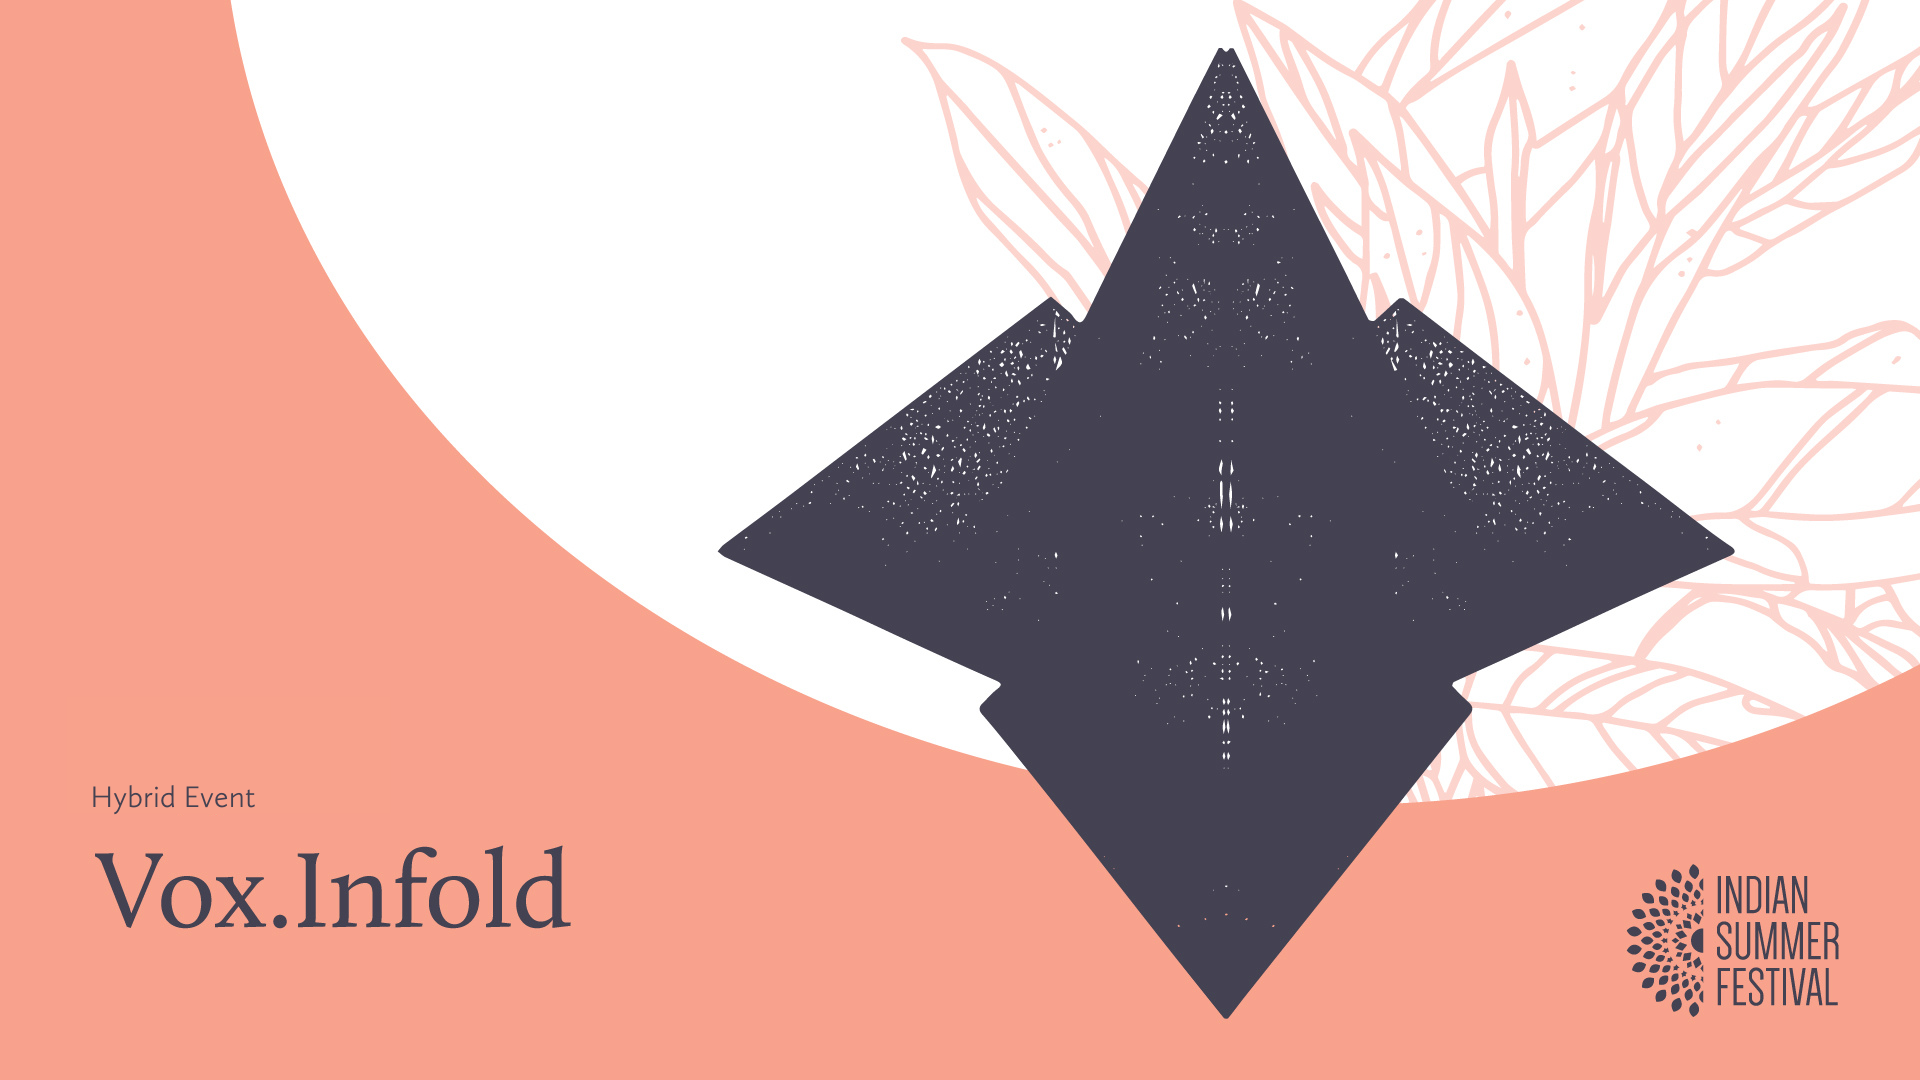 Hybrid Event logo. A geometric, abstract black and white pattern of triangular shapes sits off centre. Text reads: Hybrid Event. Vox.Infold.